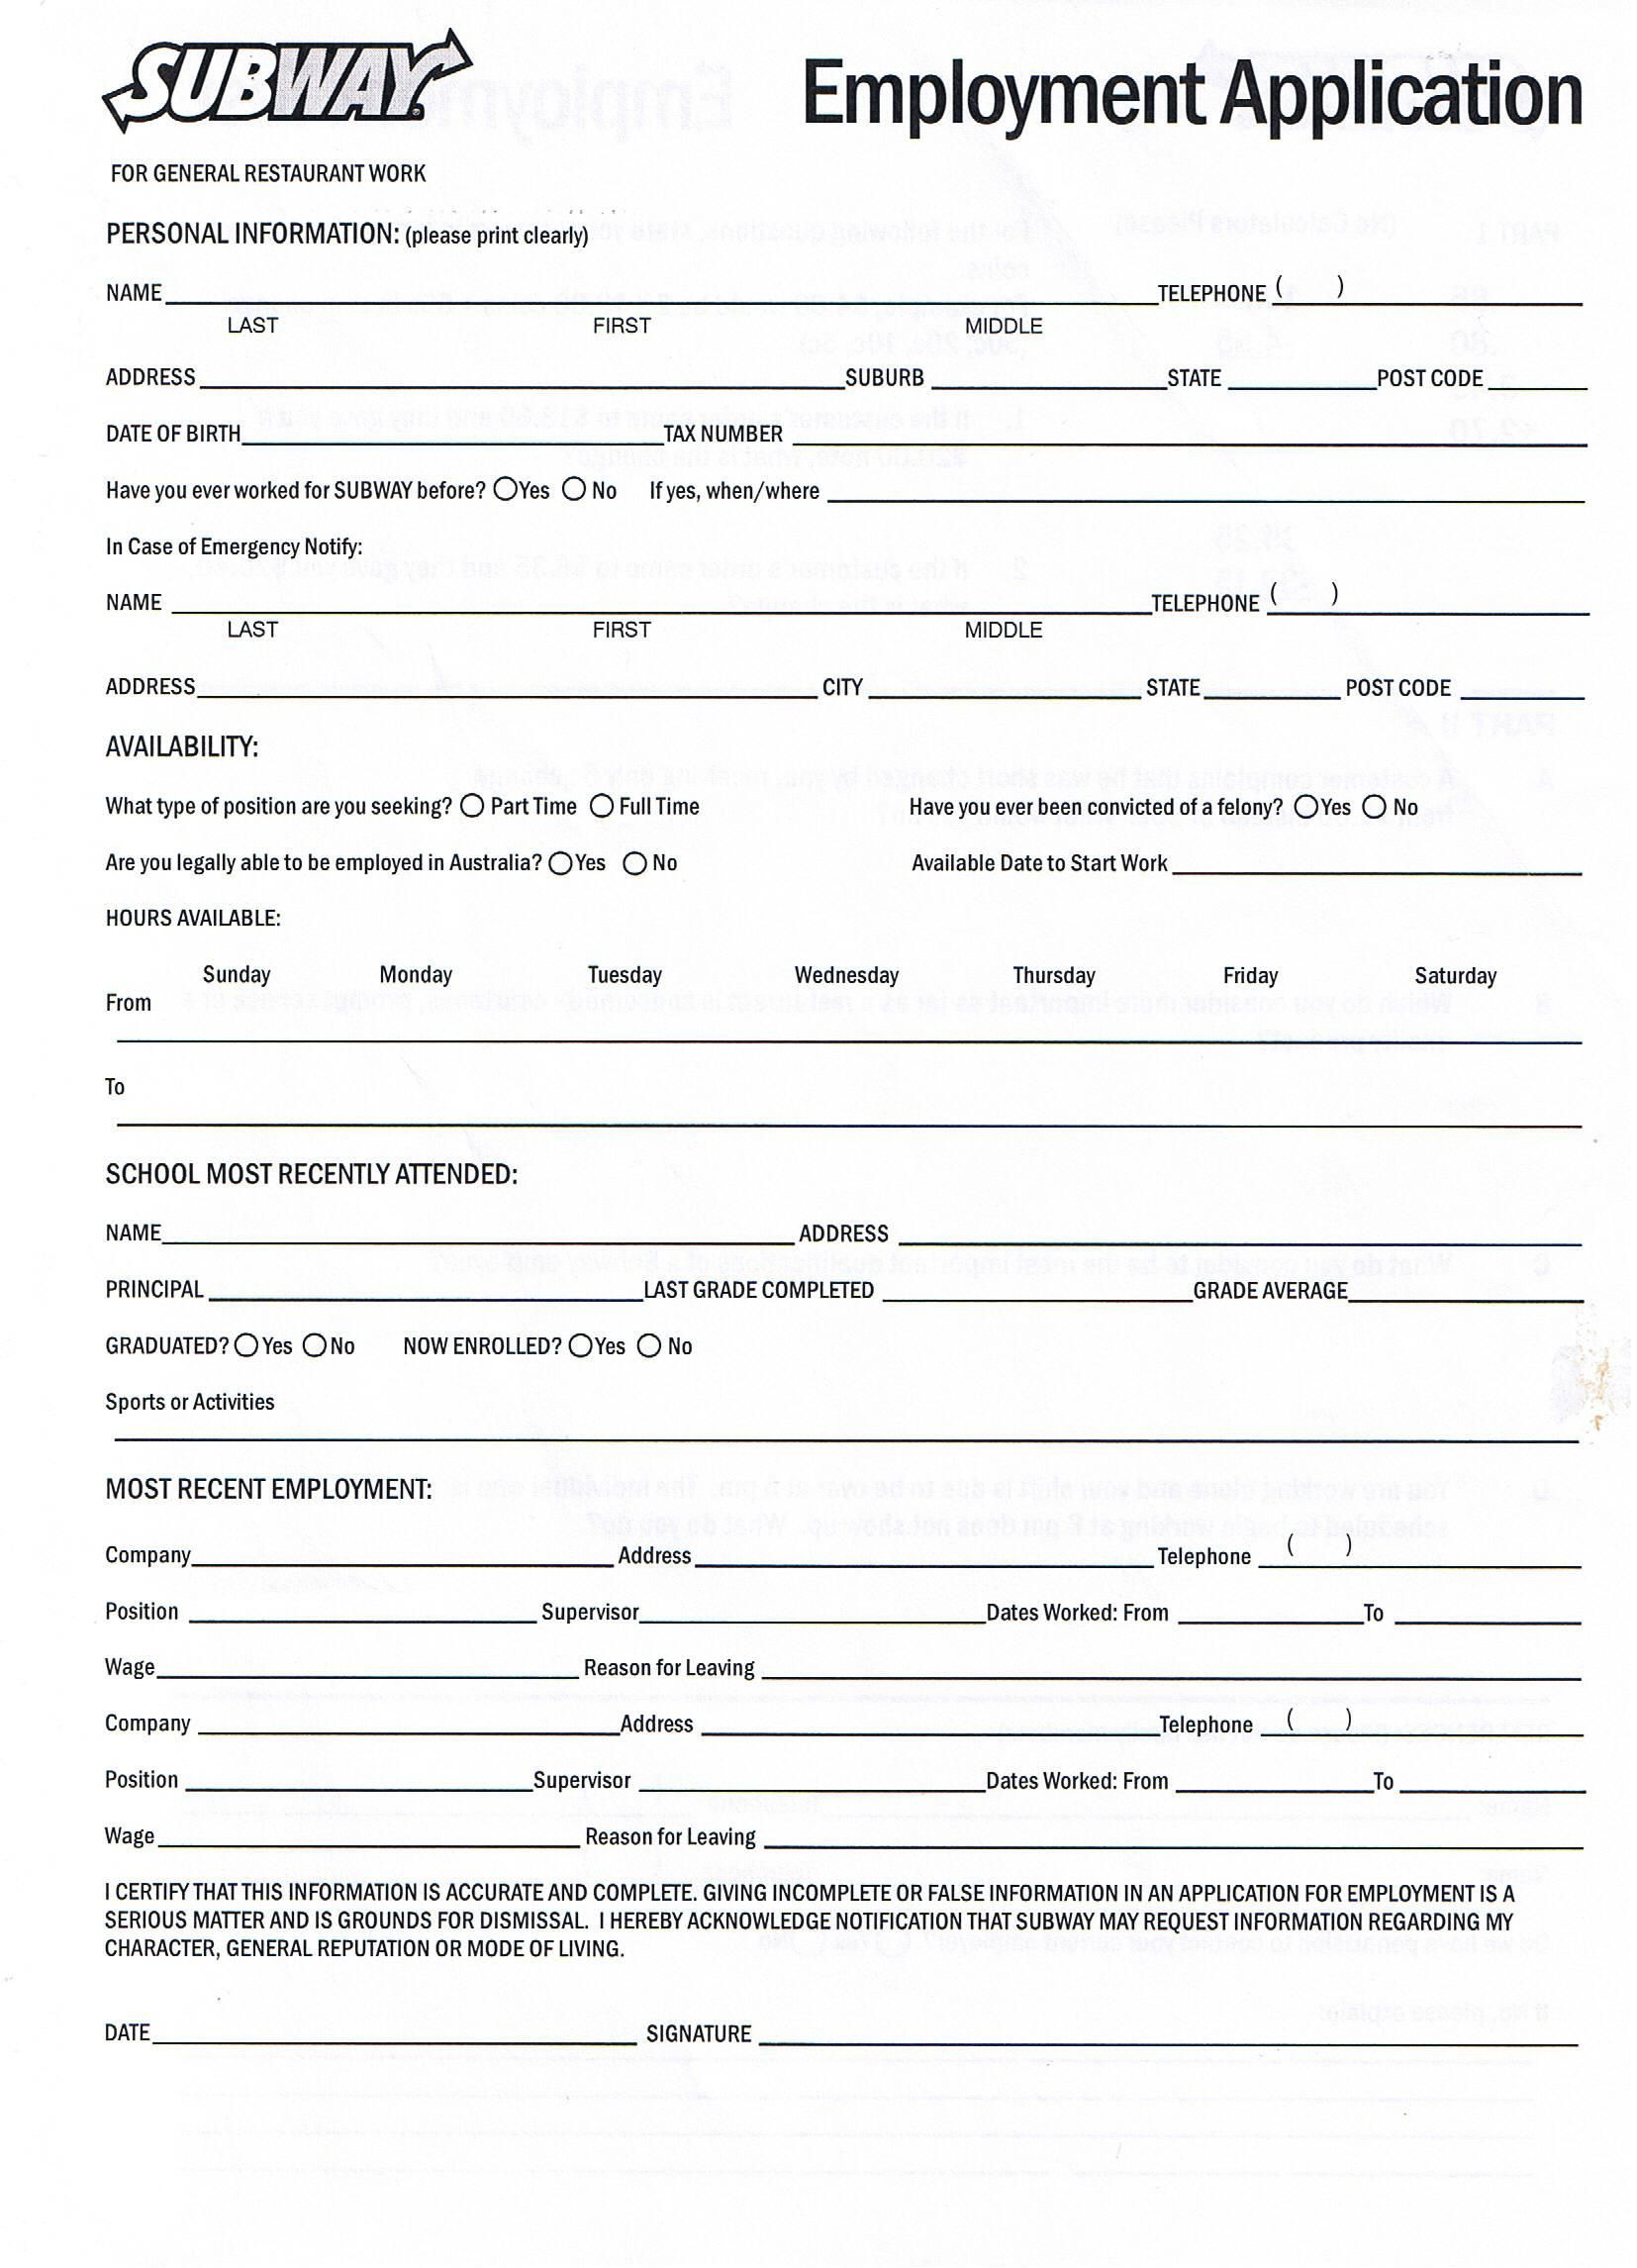 job application form online - Nuruf.comunicaasl.com